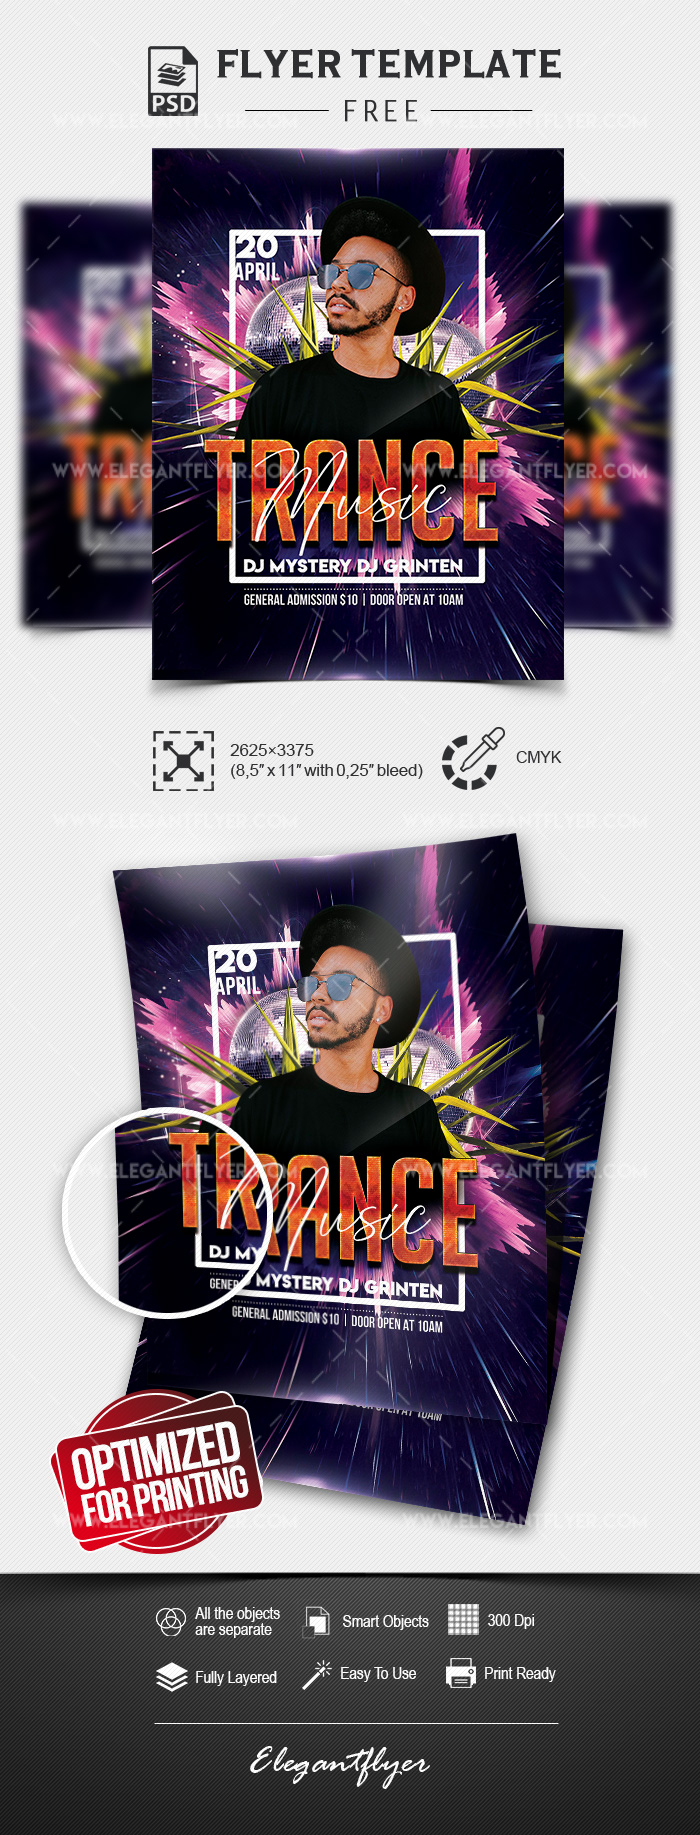 Trance Music – Free Flyer Template in PSD